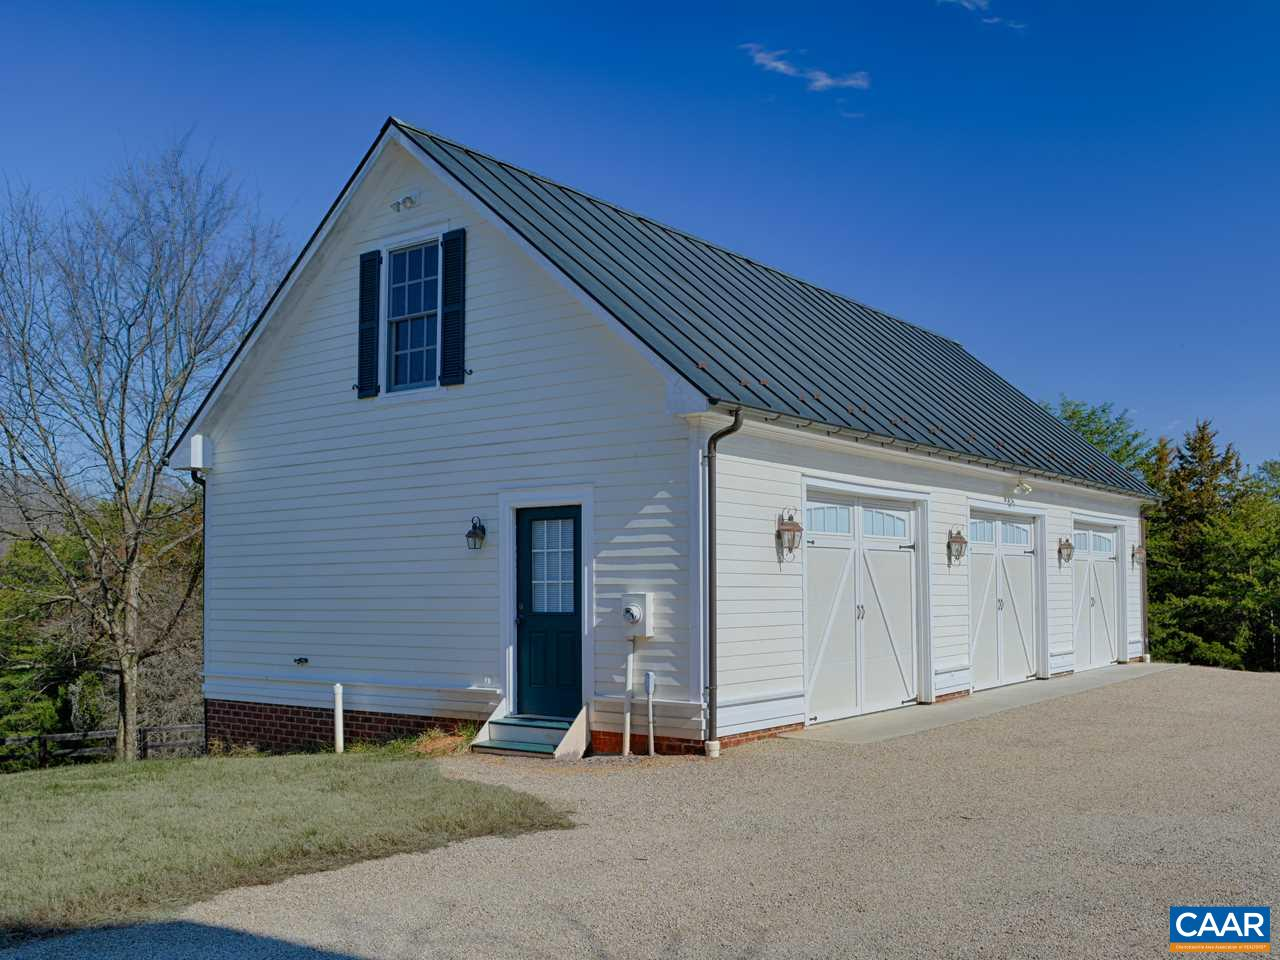 58 SIMMONS GAP RD, EARLYSVILLE, VA 22936